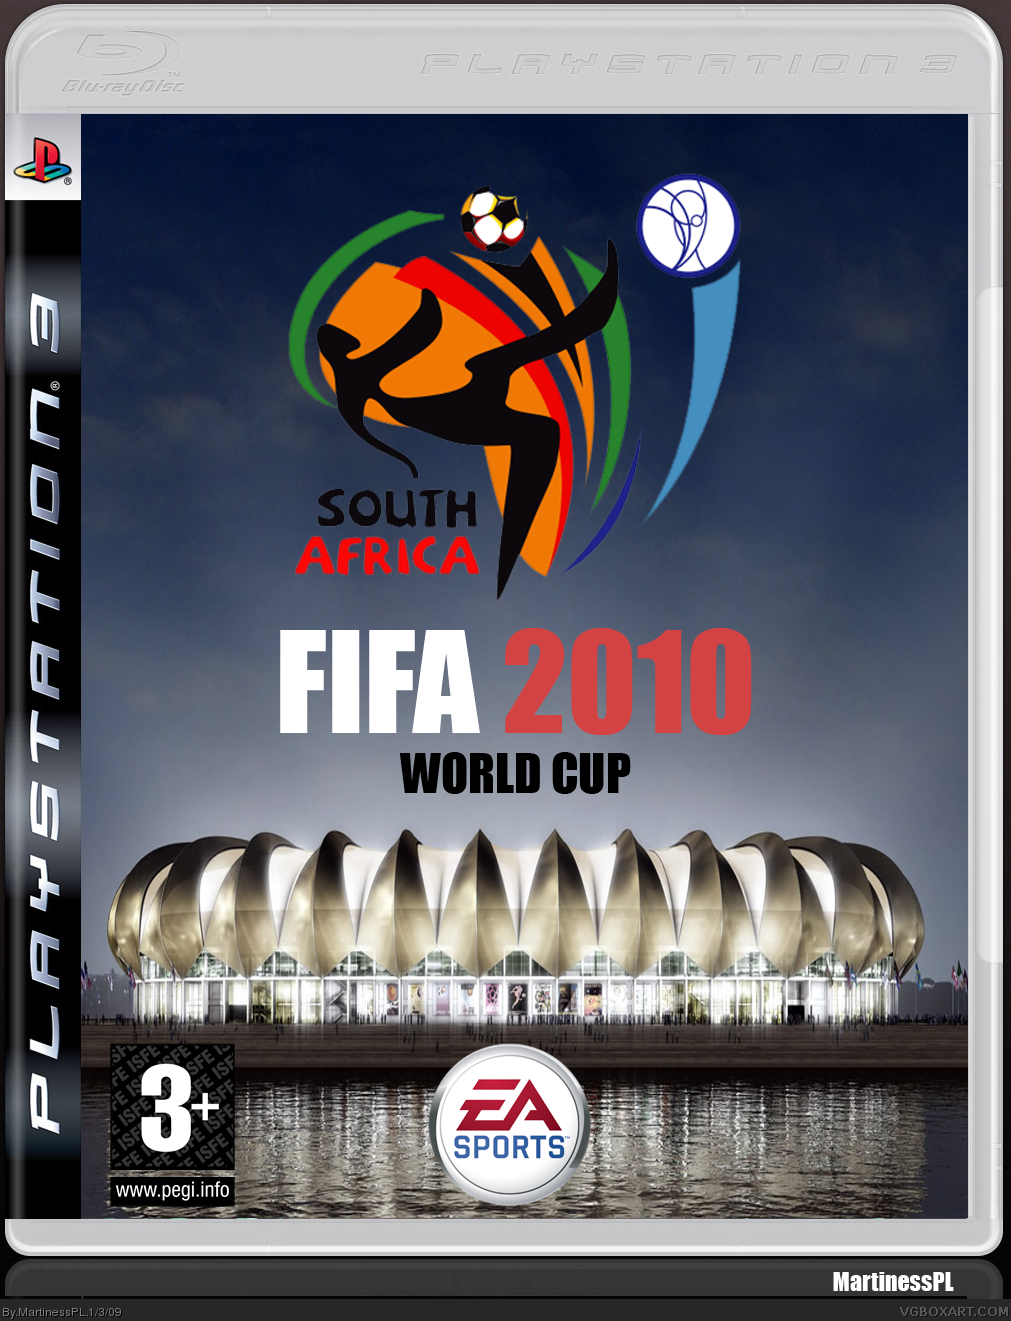 FIFA 2010 WORLD CUP box cover